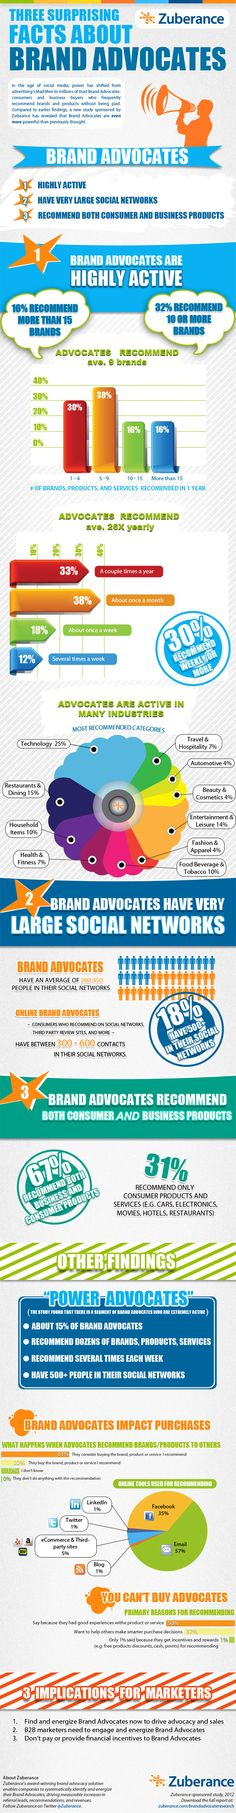 The influence of the 'Brand Advocates' in the media and social networks